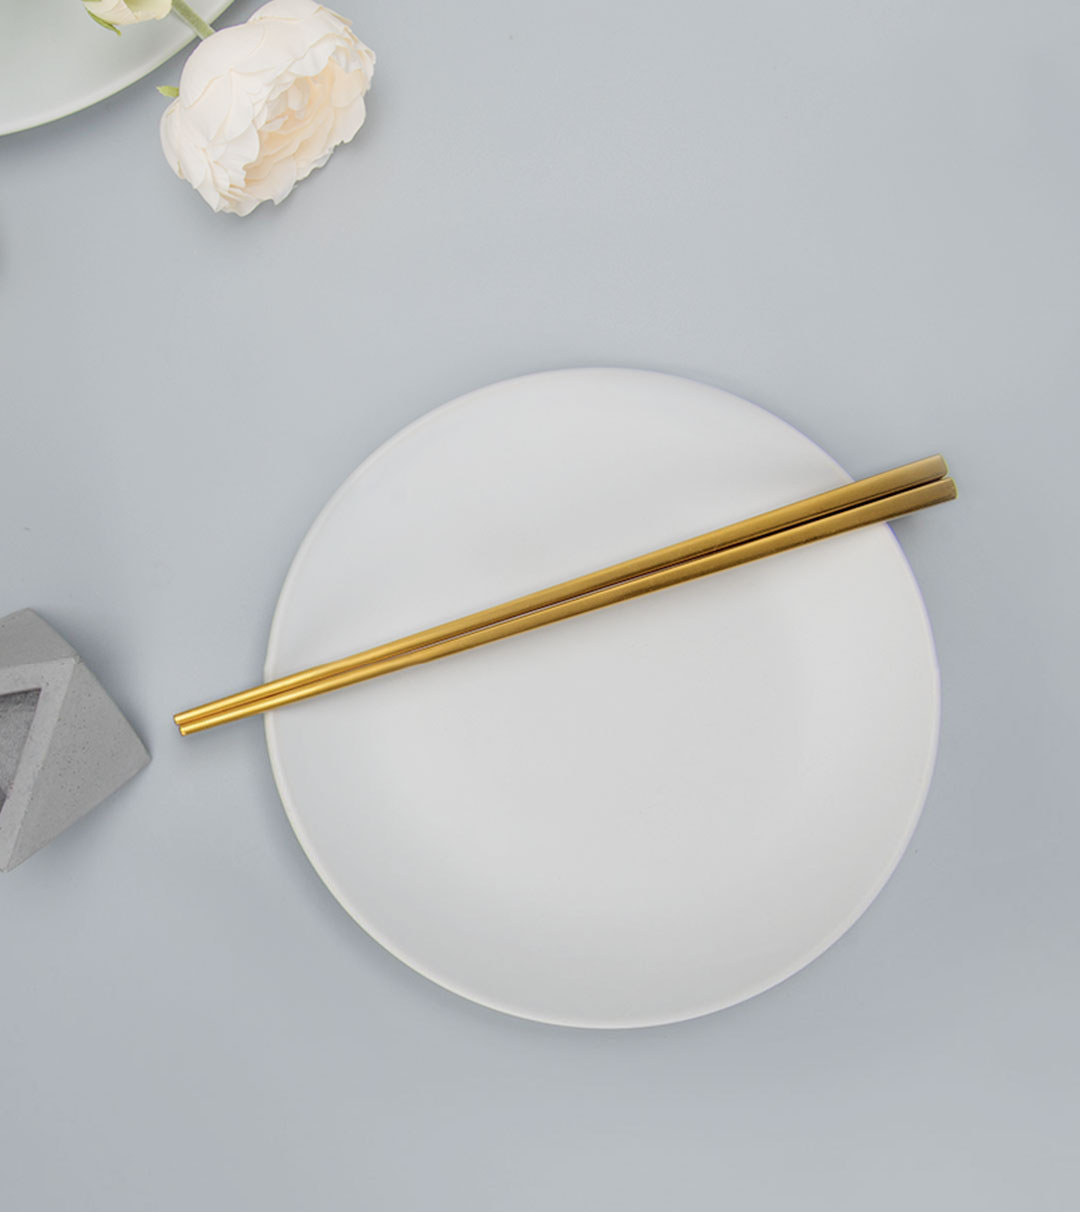 4pcs Xiaomi Chopsticks Food Grade Top 304 Stainless Steel Chopsticks Tableware Chinese Chopsticks Culture